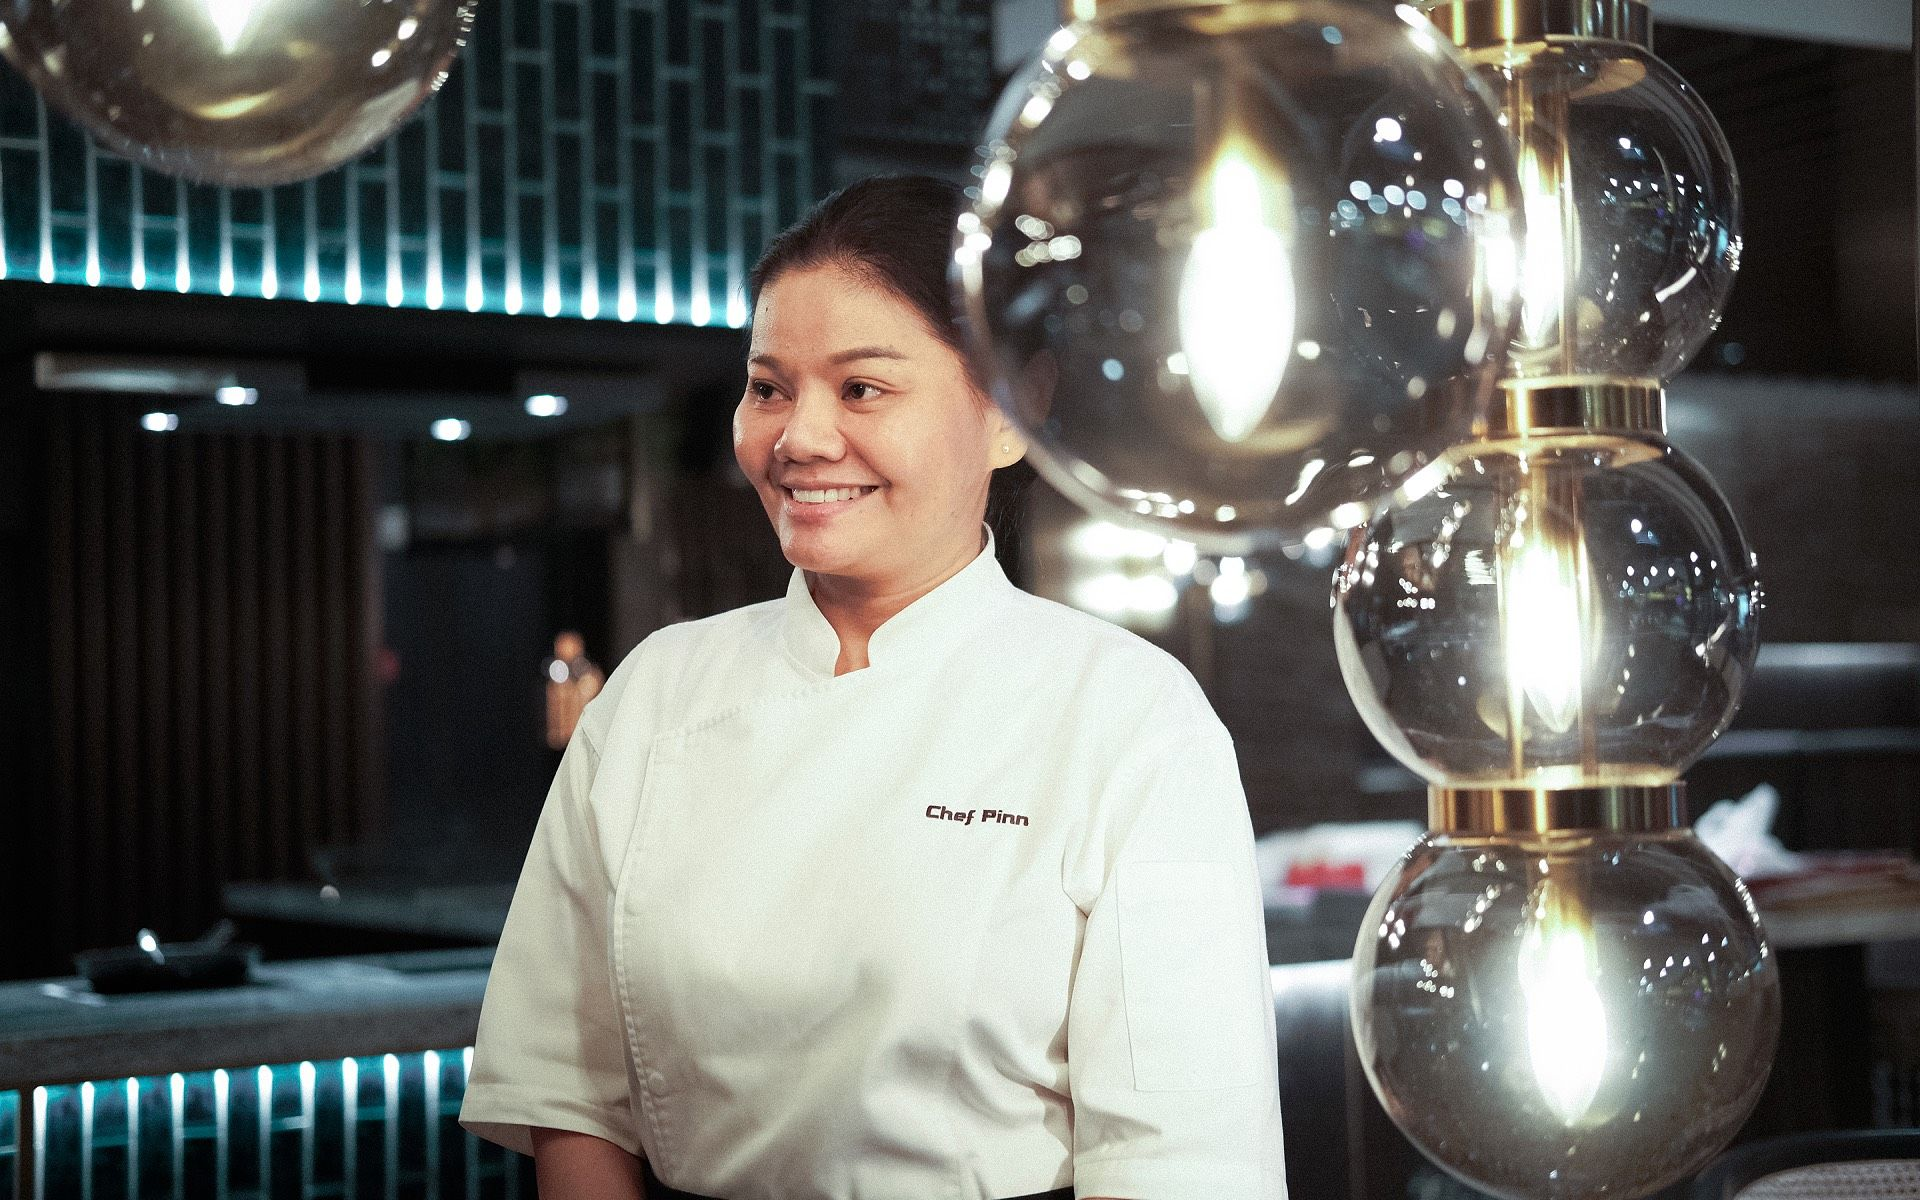 Watch: Chef Rasikan, The Thai Masterchef At Shook! The Starhill Dining